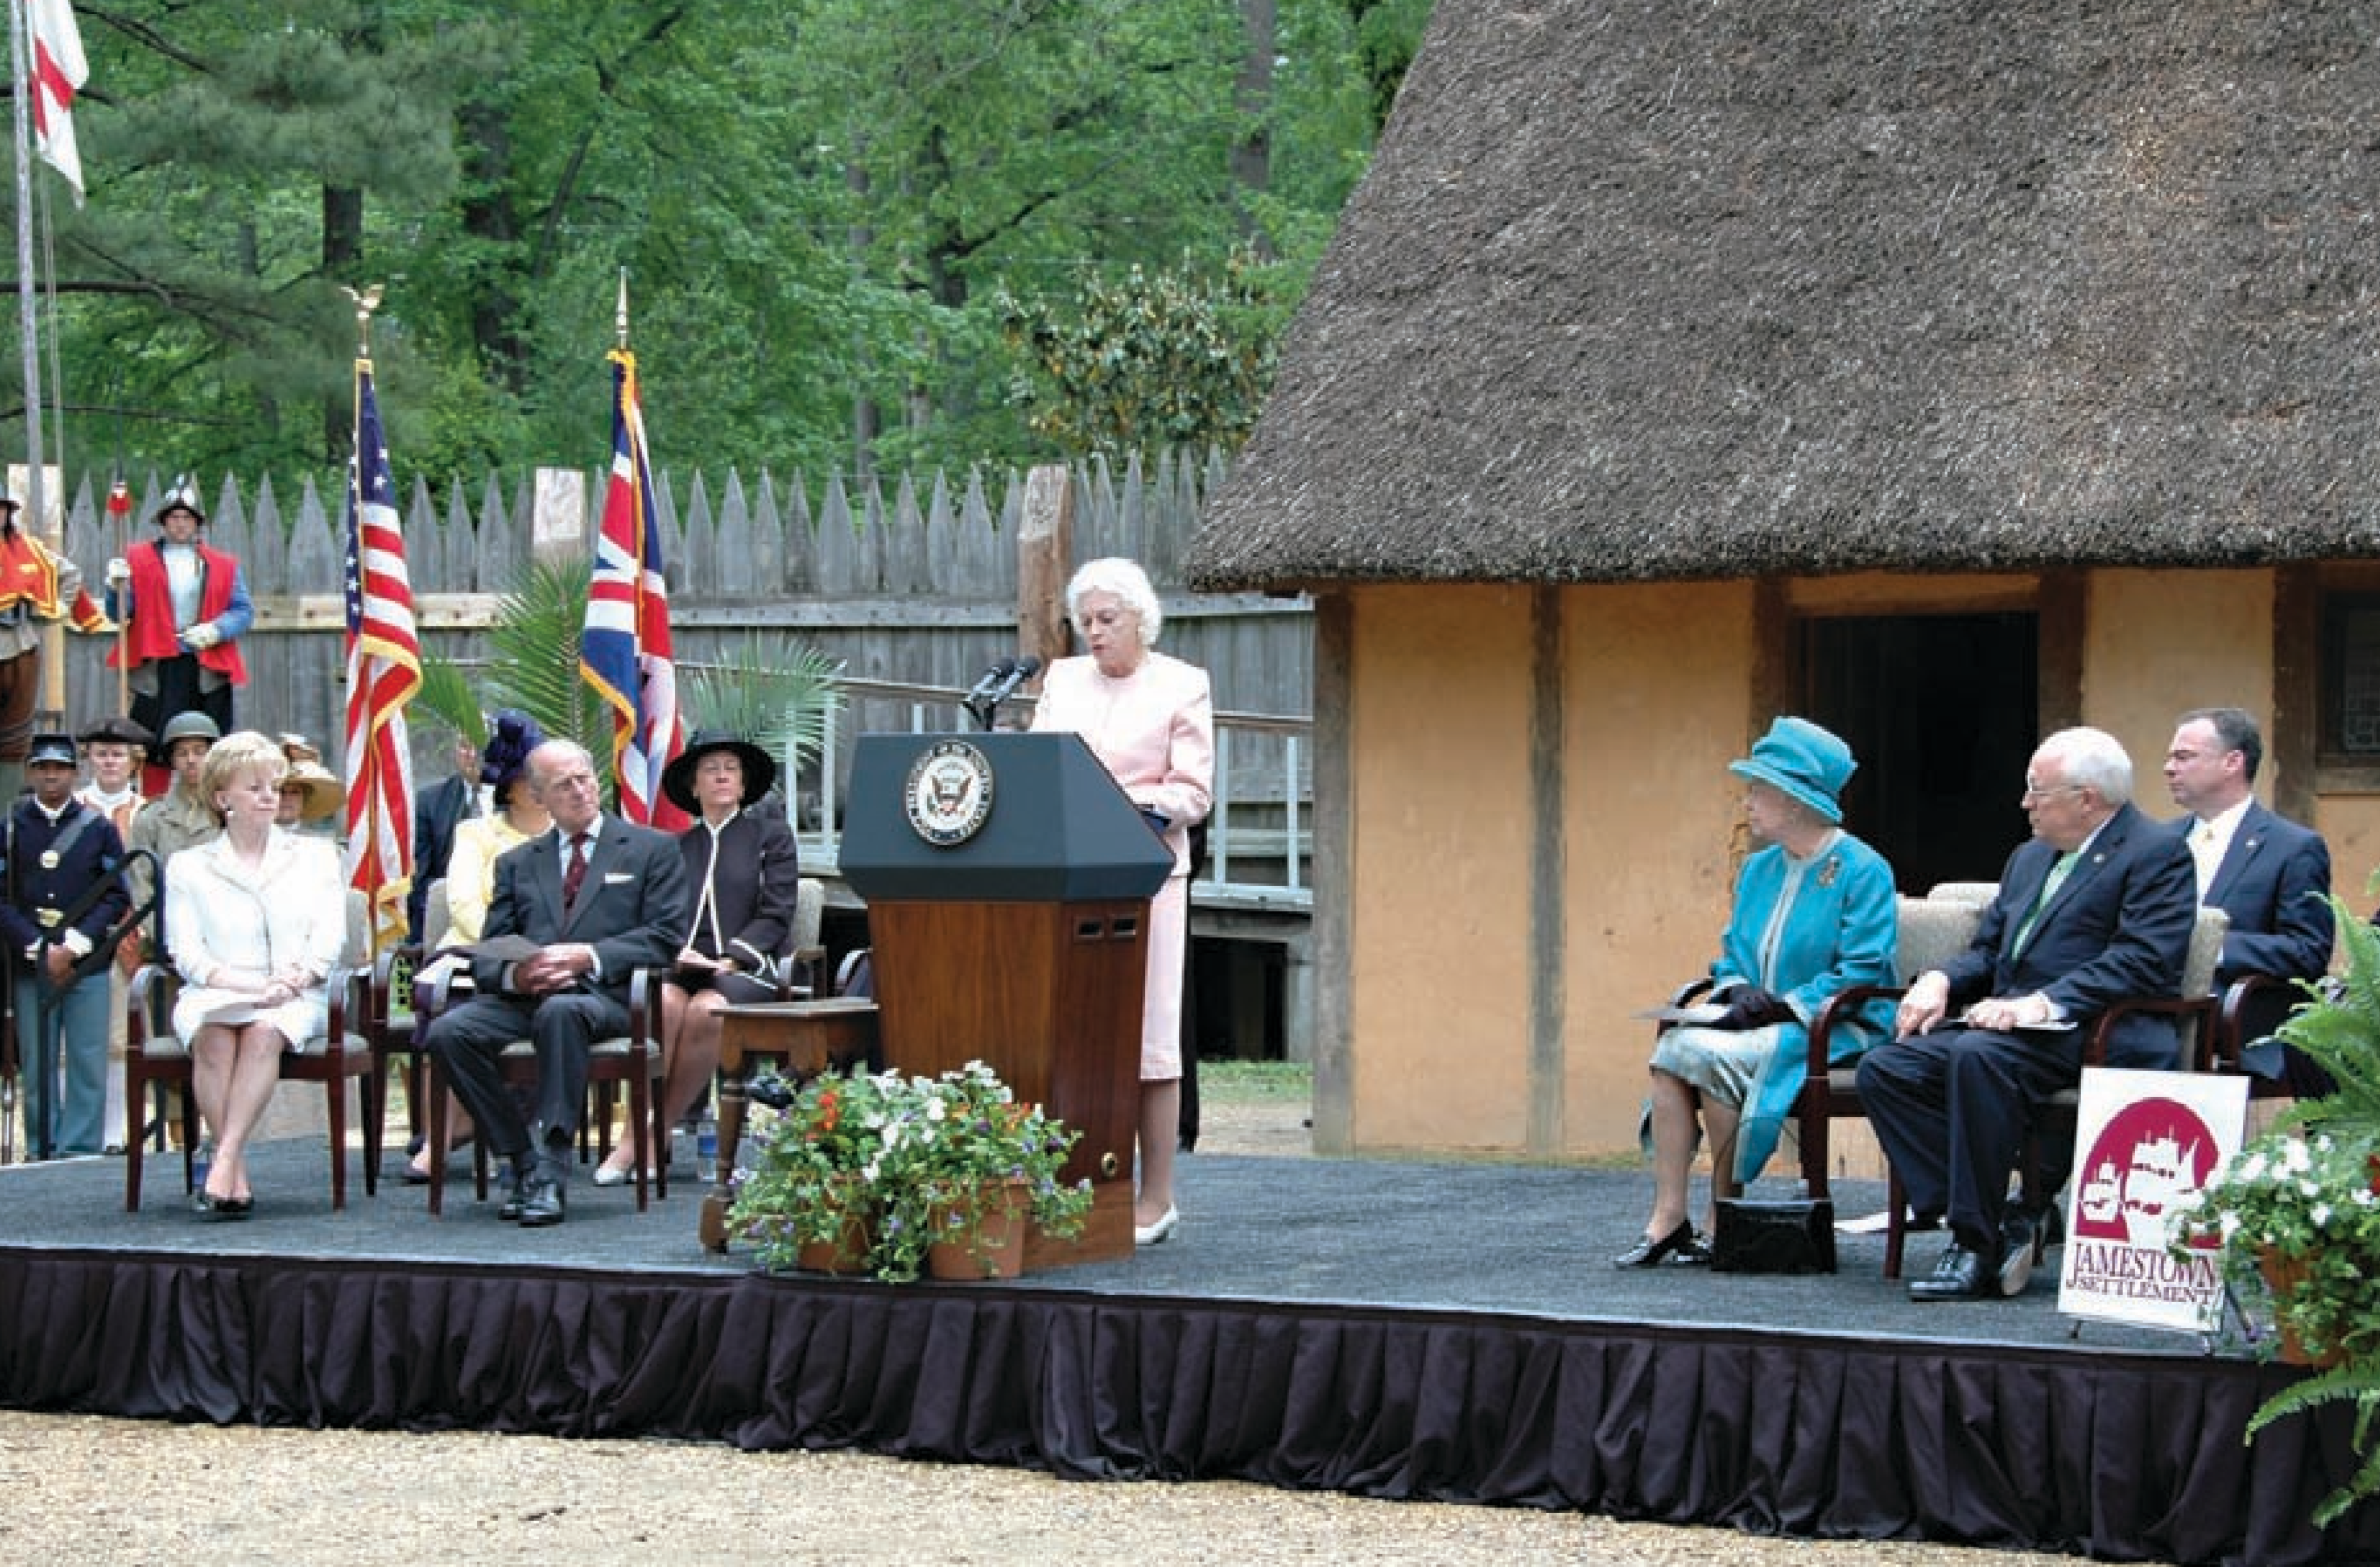 U.S. Supreme Court Justice Sandra Day O'Connor introduces Queen Elizabeth II during Her Majesty's May 2007 visit to Jamestown Settlement.